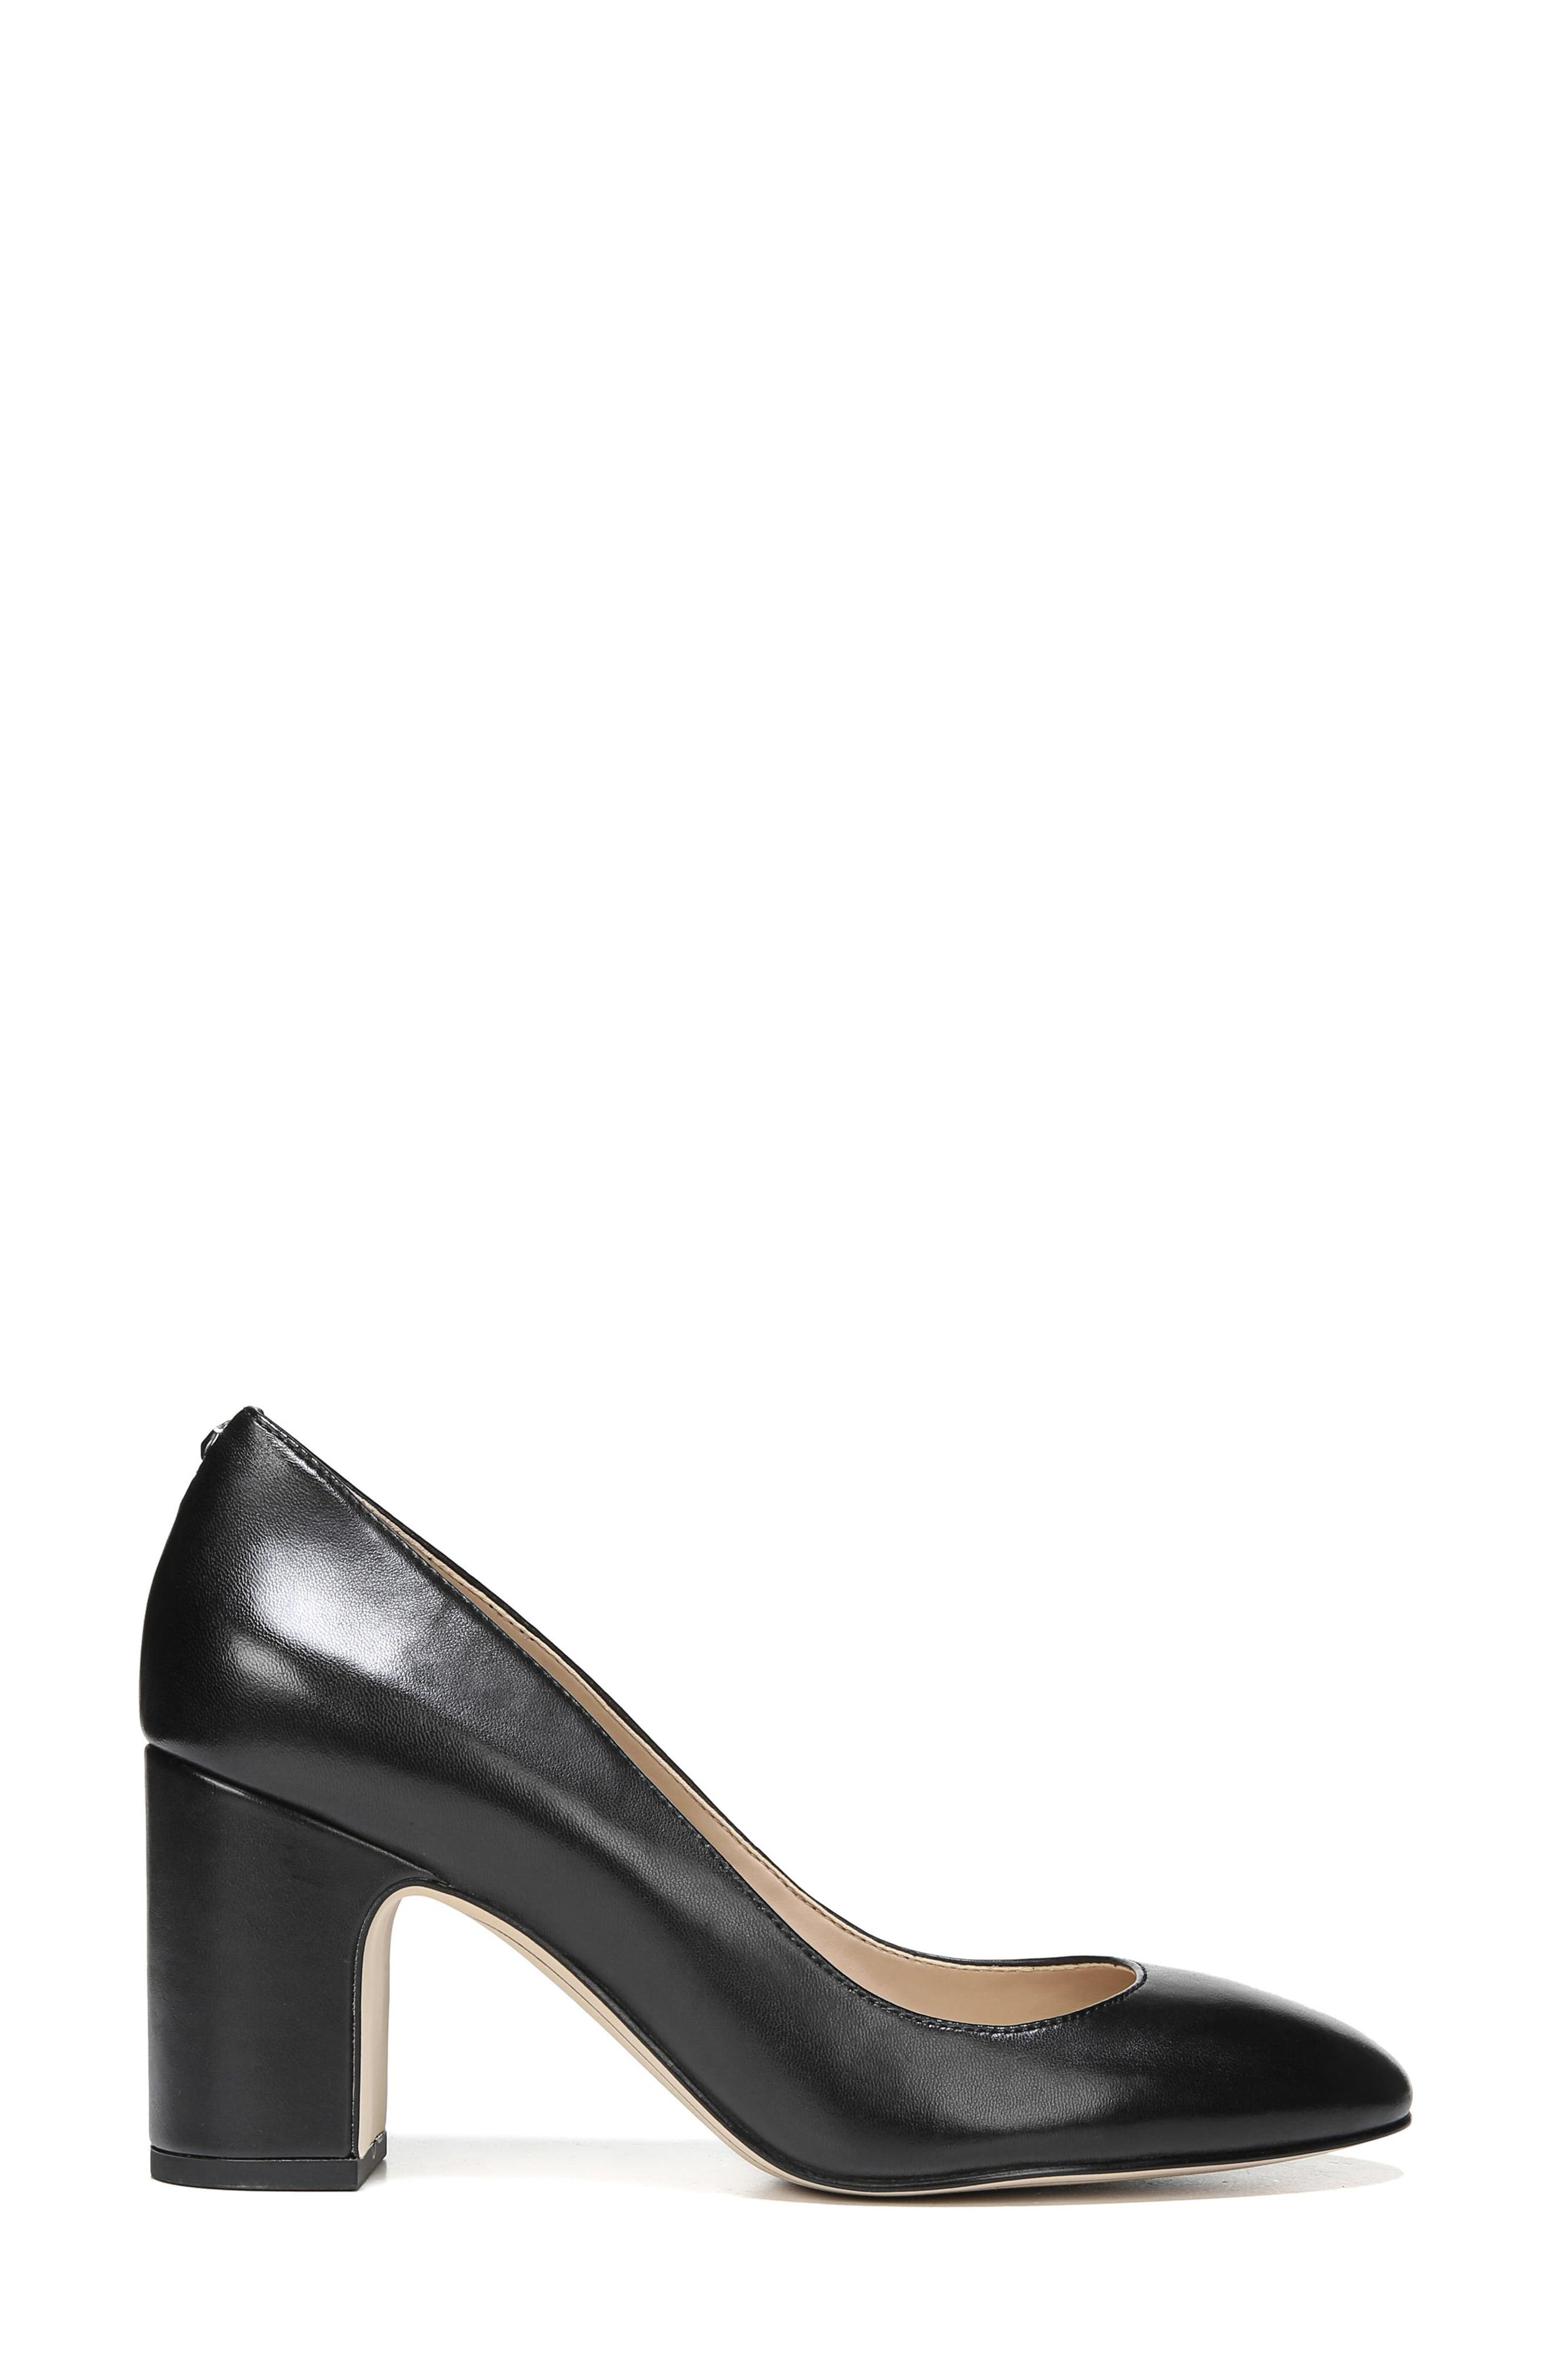 Alternate Image 3  - Sam Edelman Junie Pump (Women)